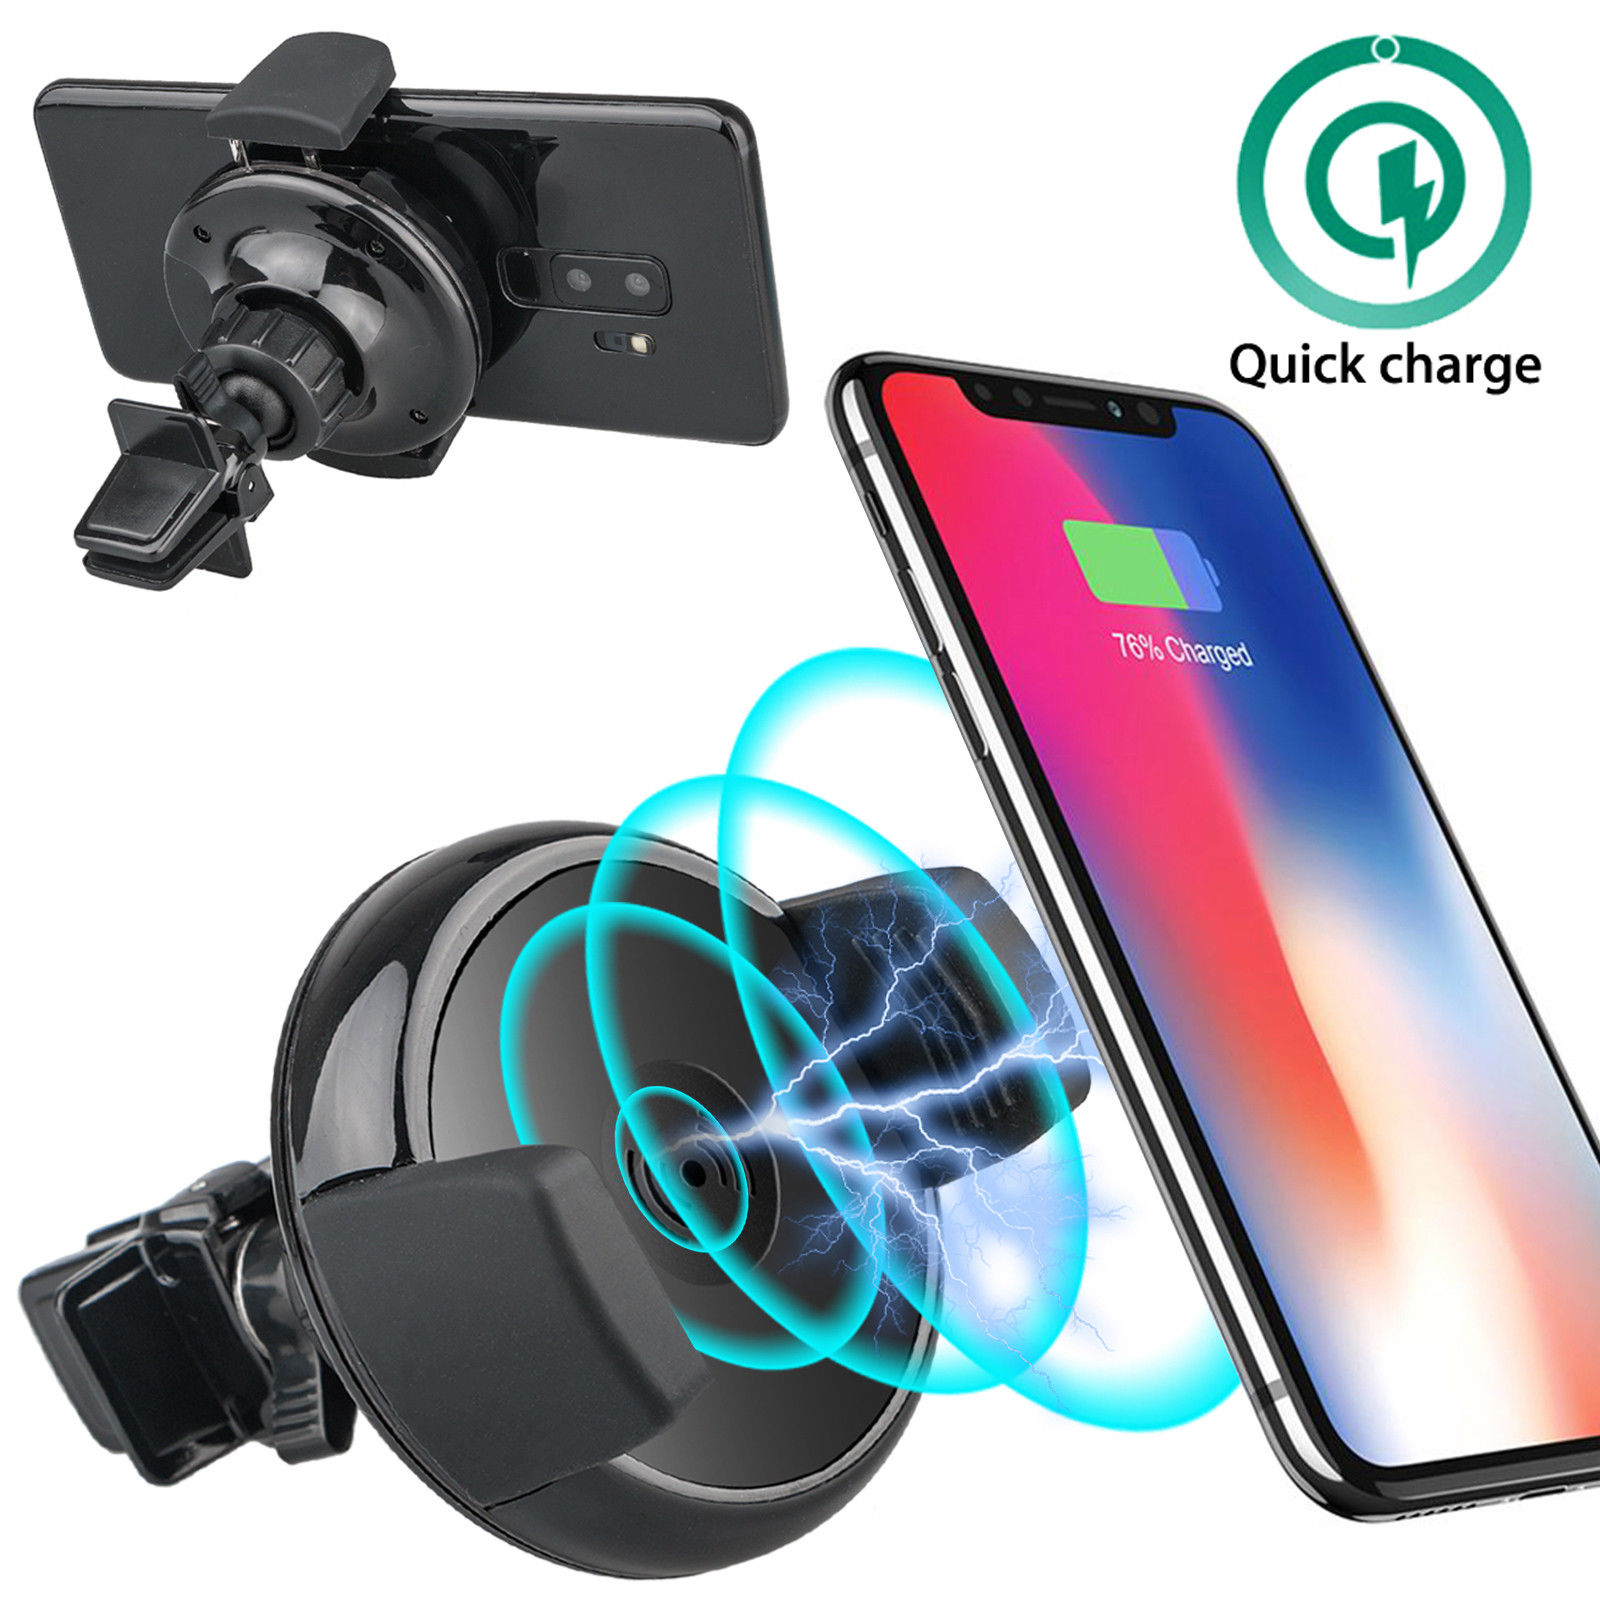 Qi Wireless Charger Holder, Car Air Vent Mount Dock for iPhone X/8Plus, Samsung Galaxy S9/S8 Plus/S7/S6 Edge Note 9 8 & Qi Enabled Devices